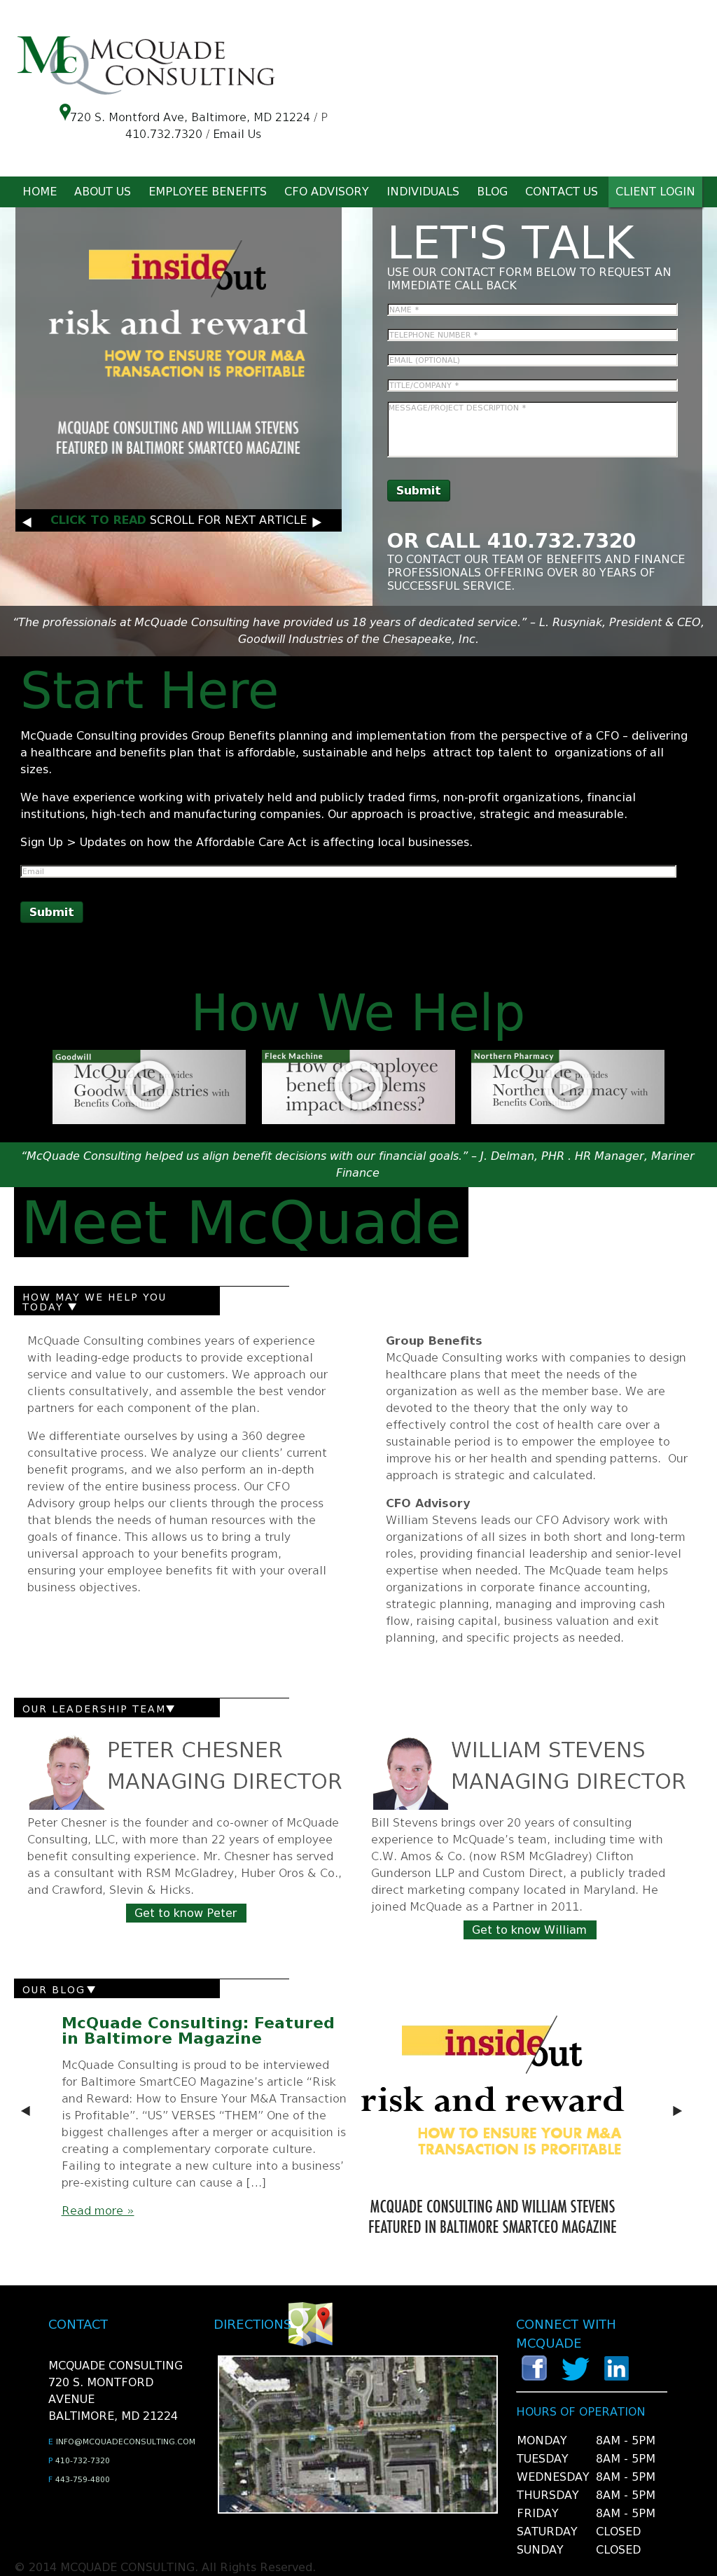 McQuade Consulting Competitors, Revenue and Employees - Owler